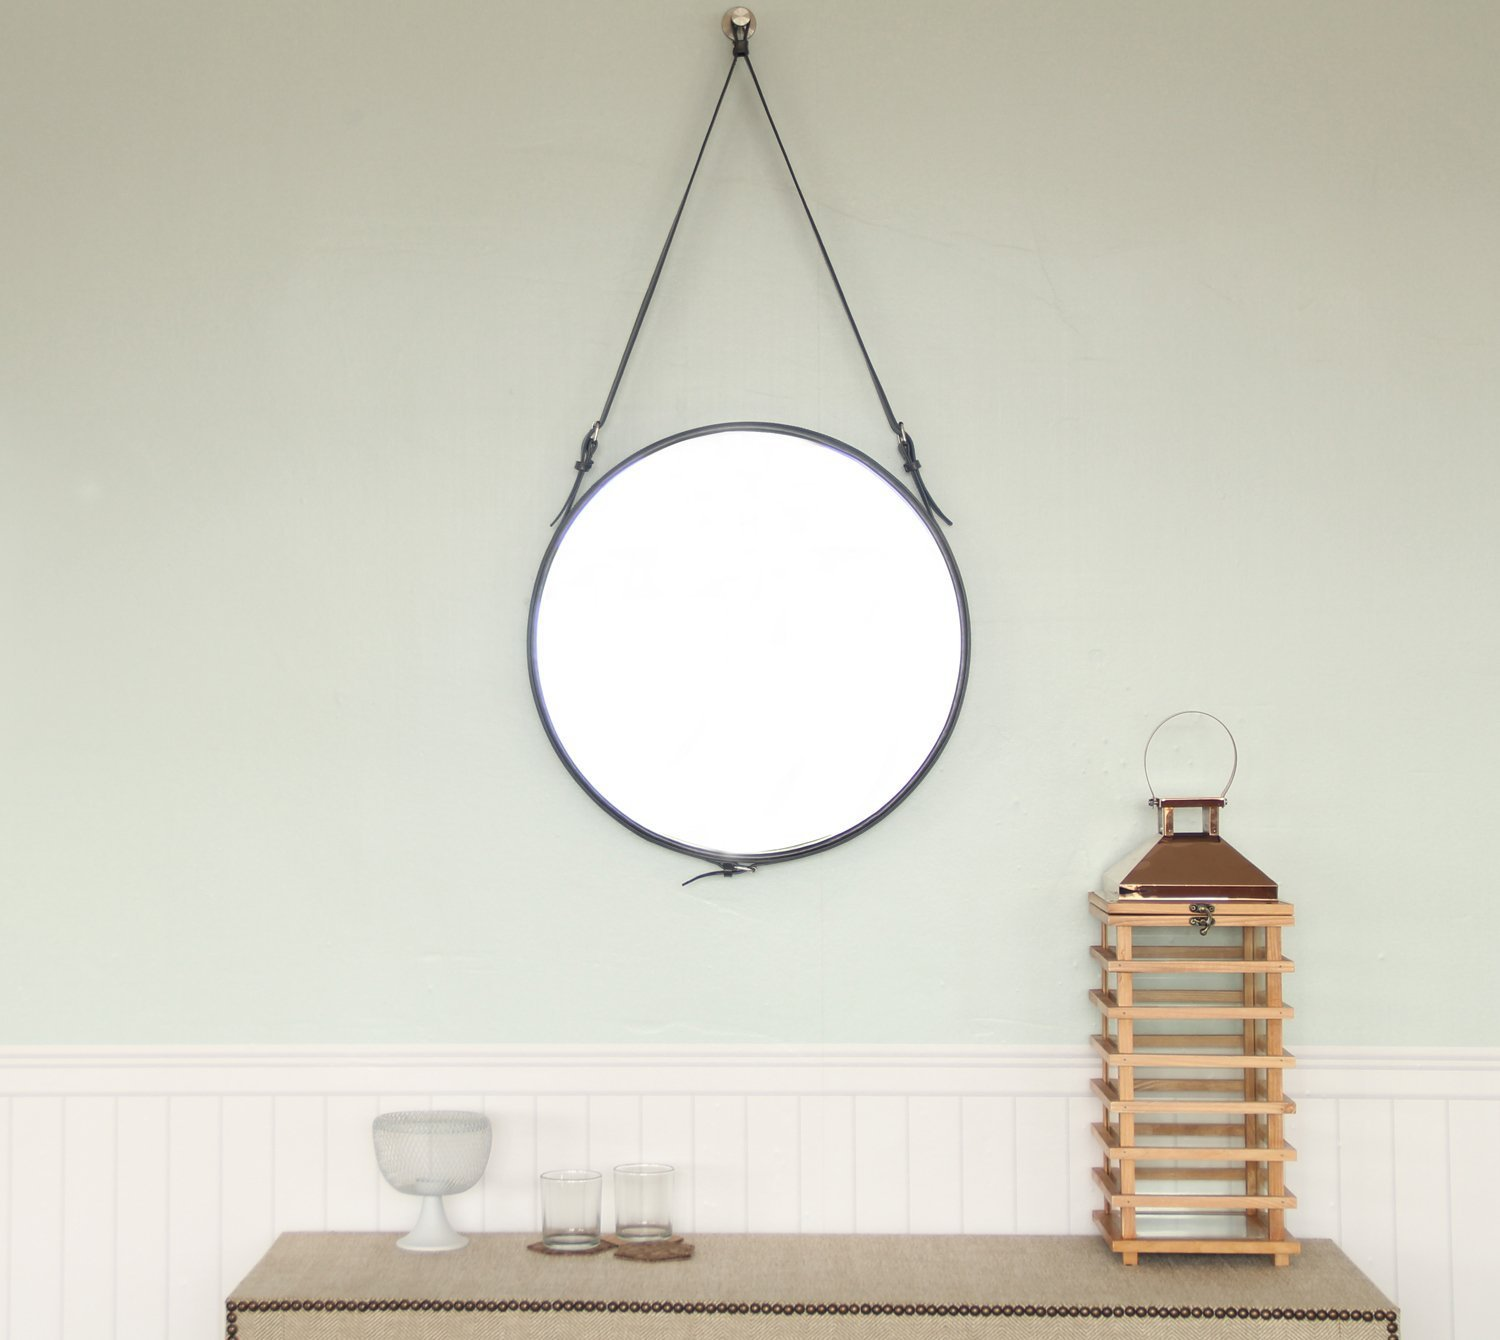 The 5 Best Wall Mirrors In All Shapes And Sizes: 2020 Buying Guide 1